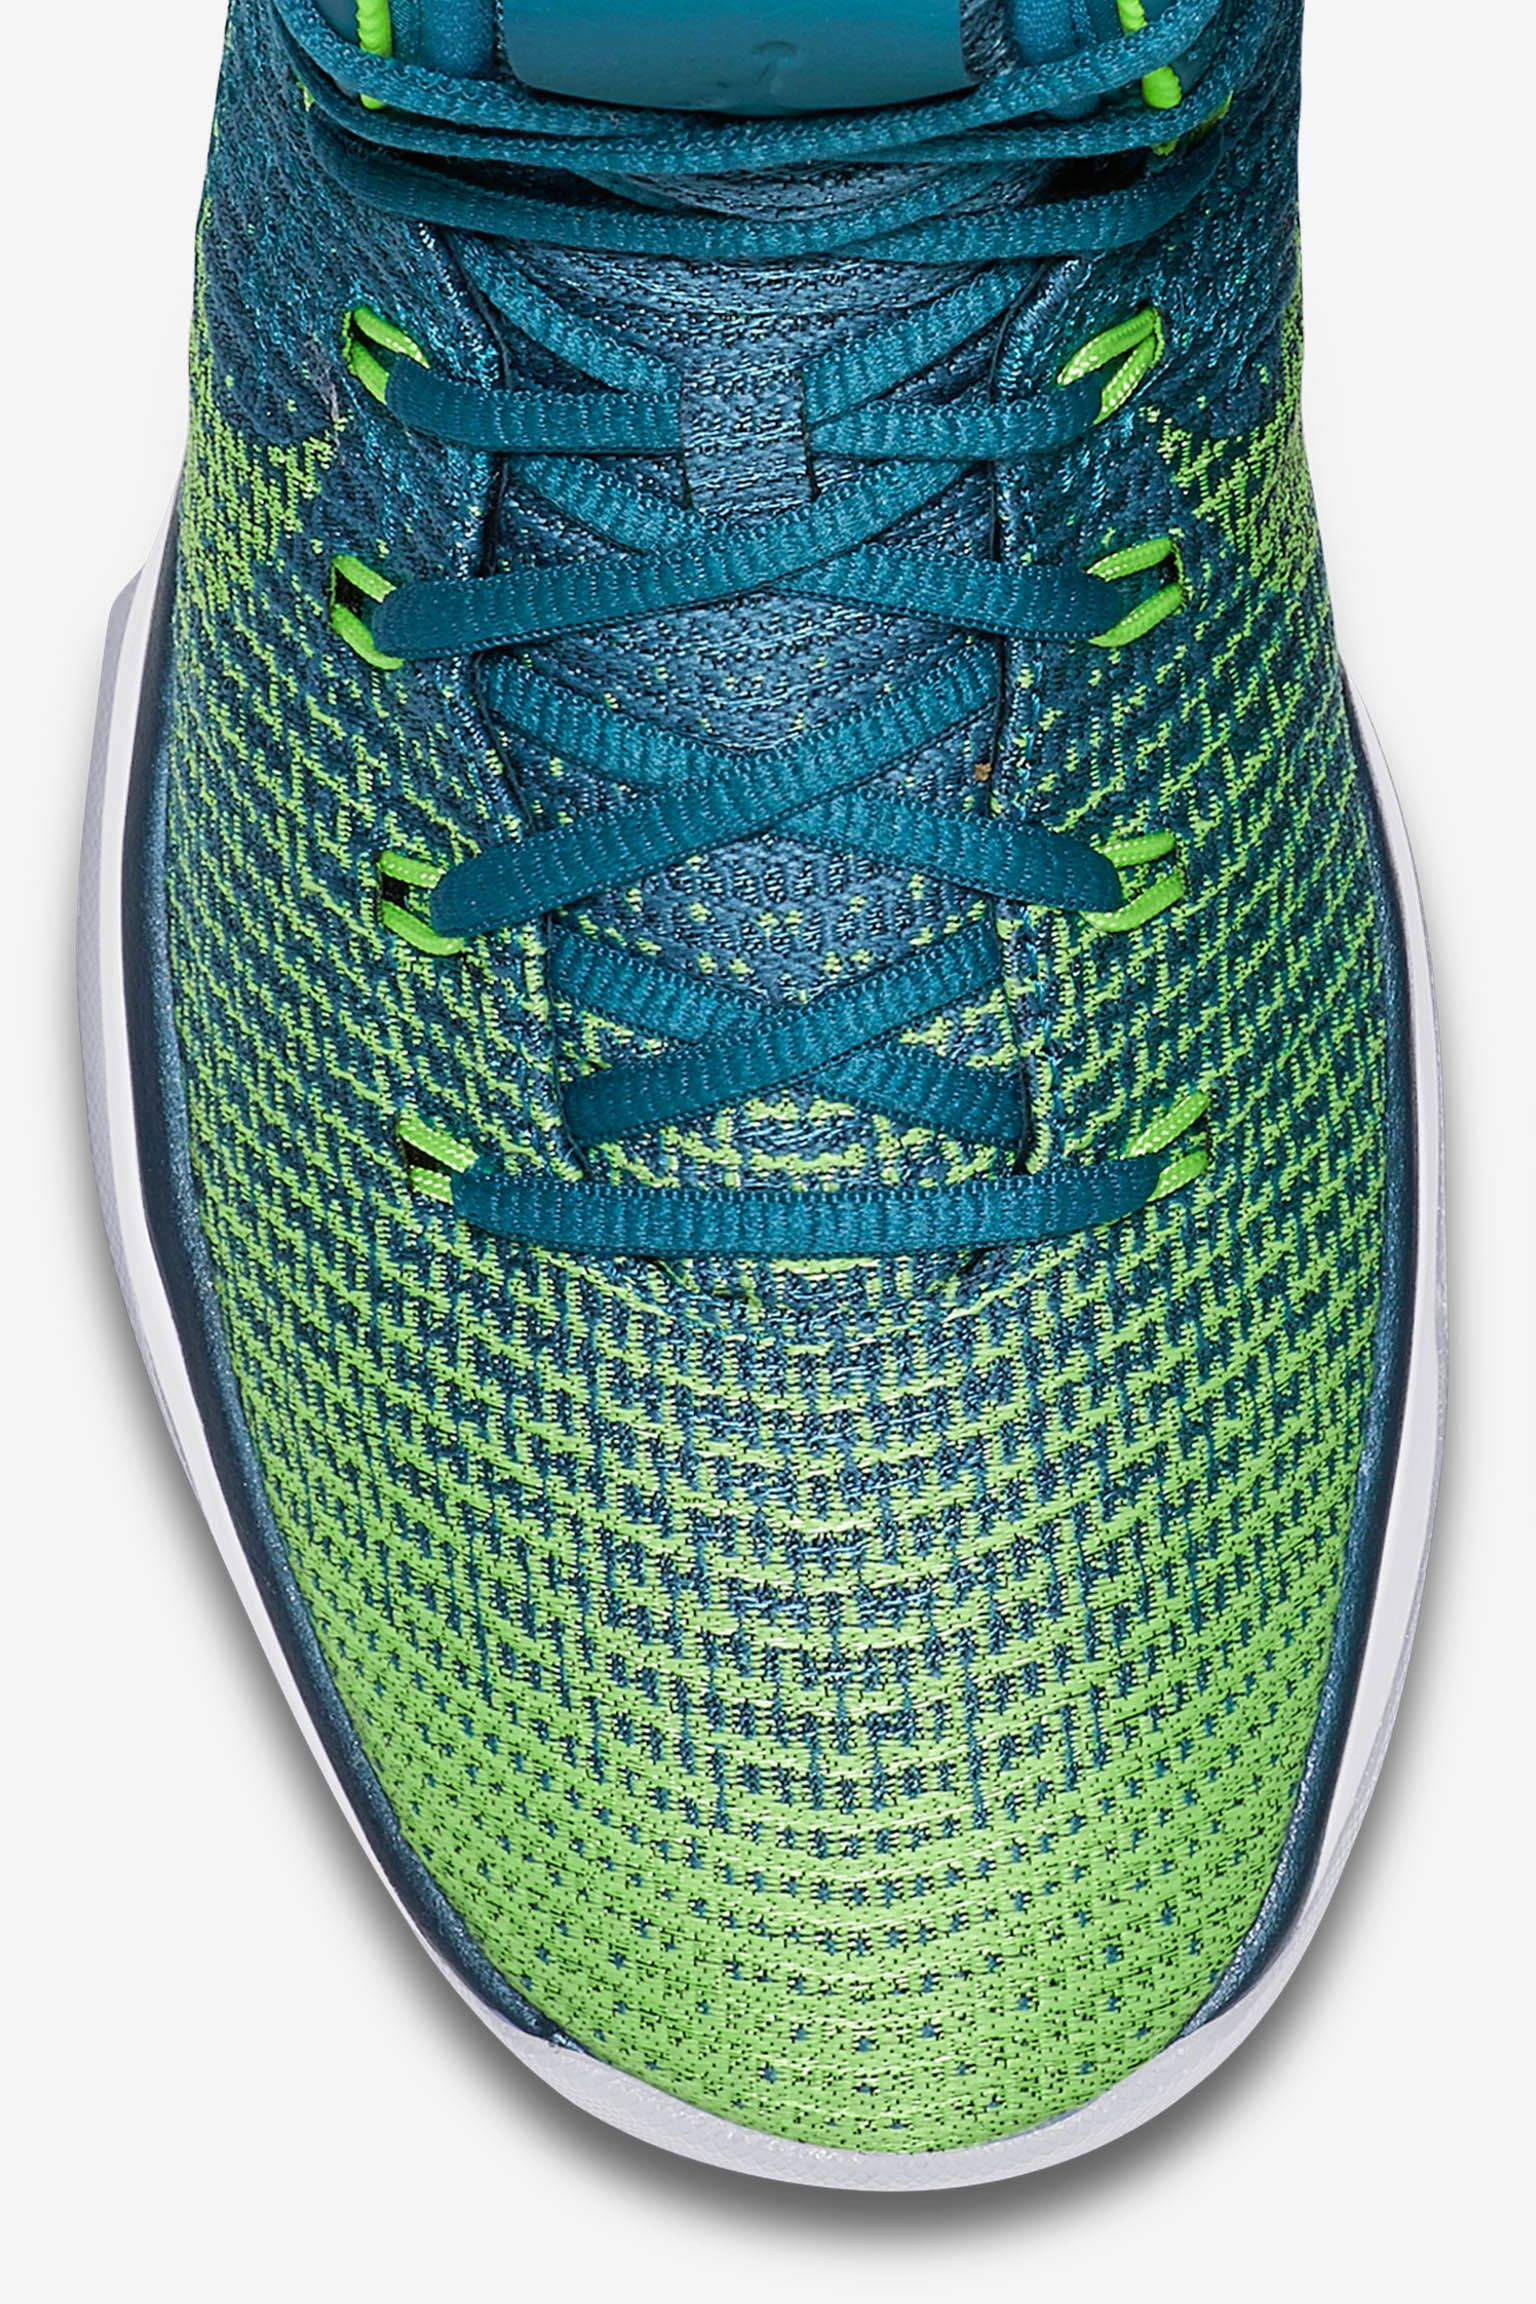 hot sale online e9981 198f7 ... real air jordan 31 green abyss release date 6146c 07a5a